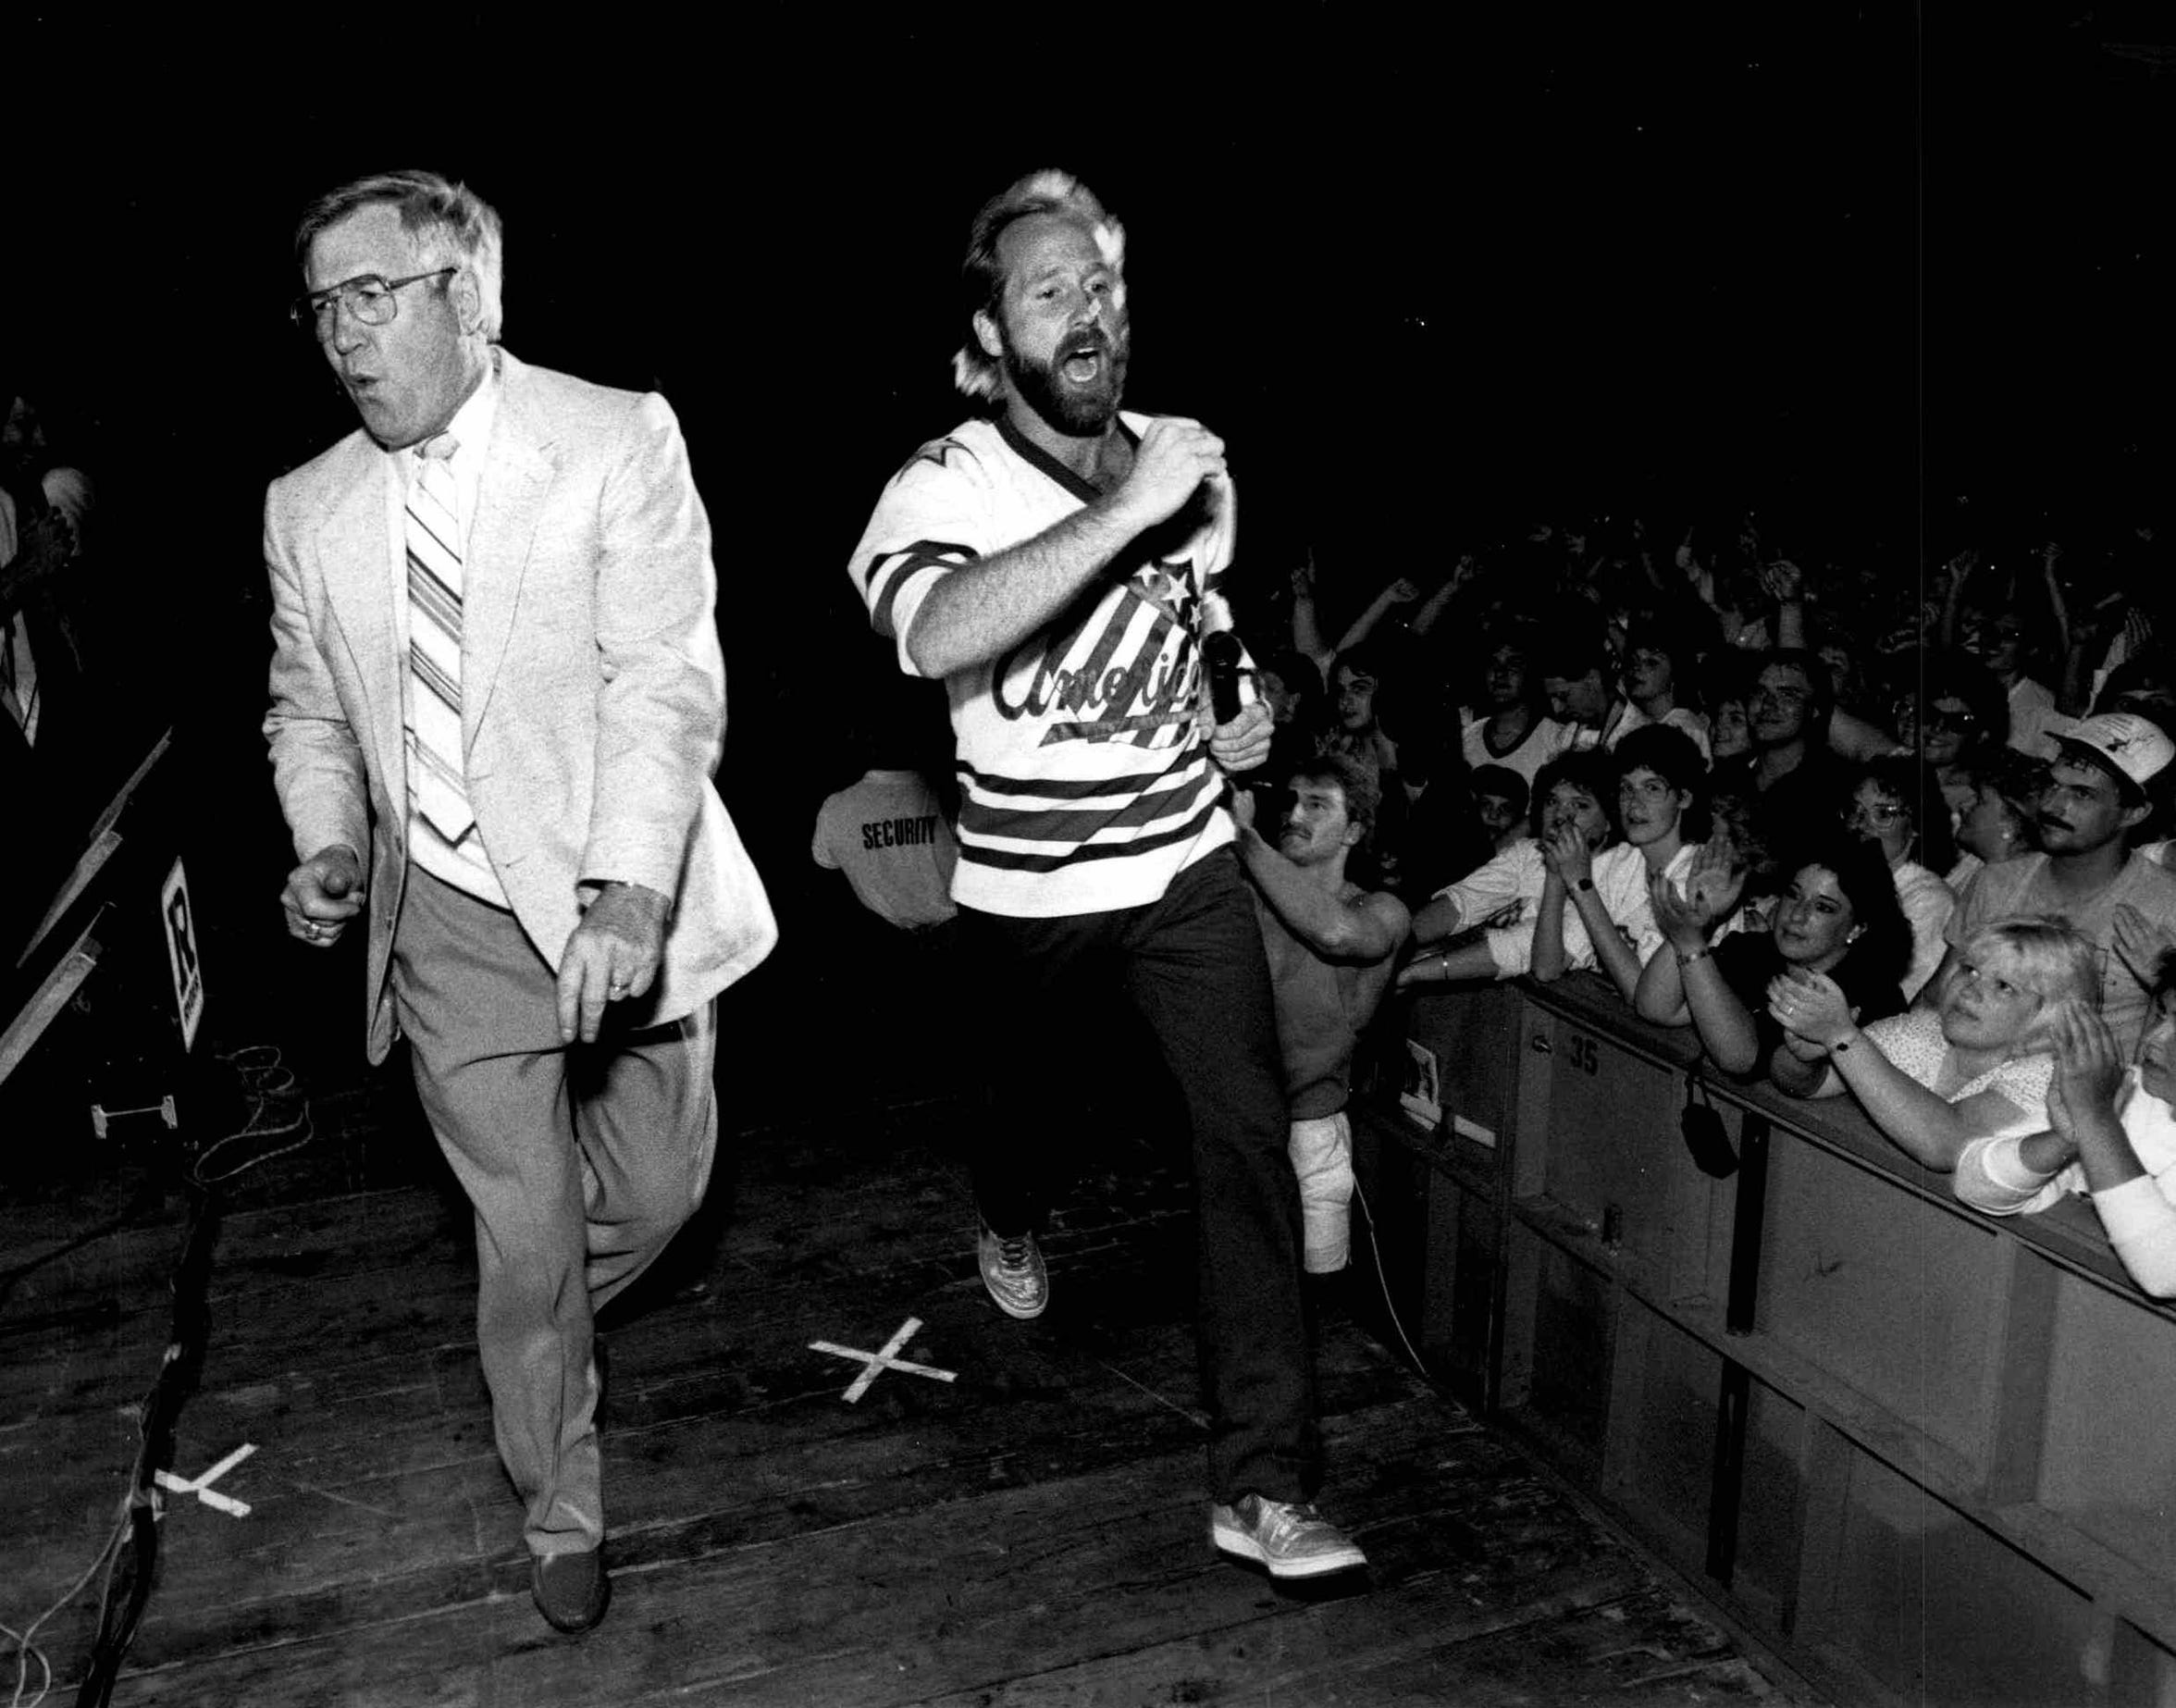 Joe Crozier performs with Brian Venton of Nik and the Nice Guys during the Rochester Americans 1987 Calder Cup championship celebration at the Rochester Community War Memorial.